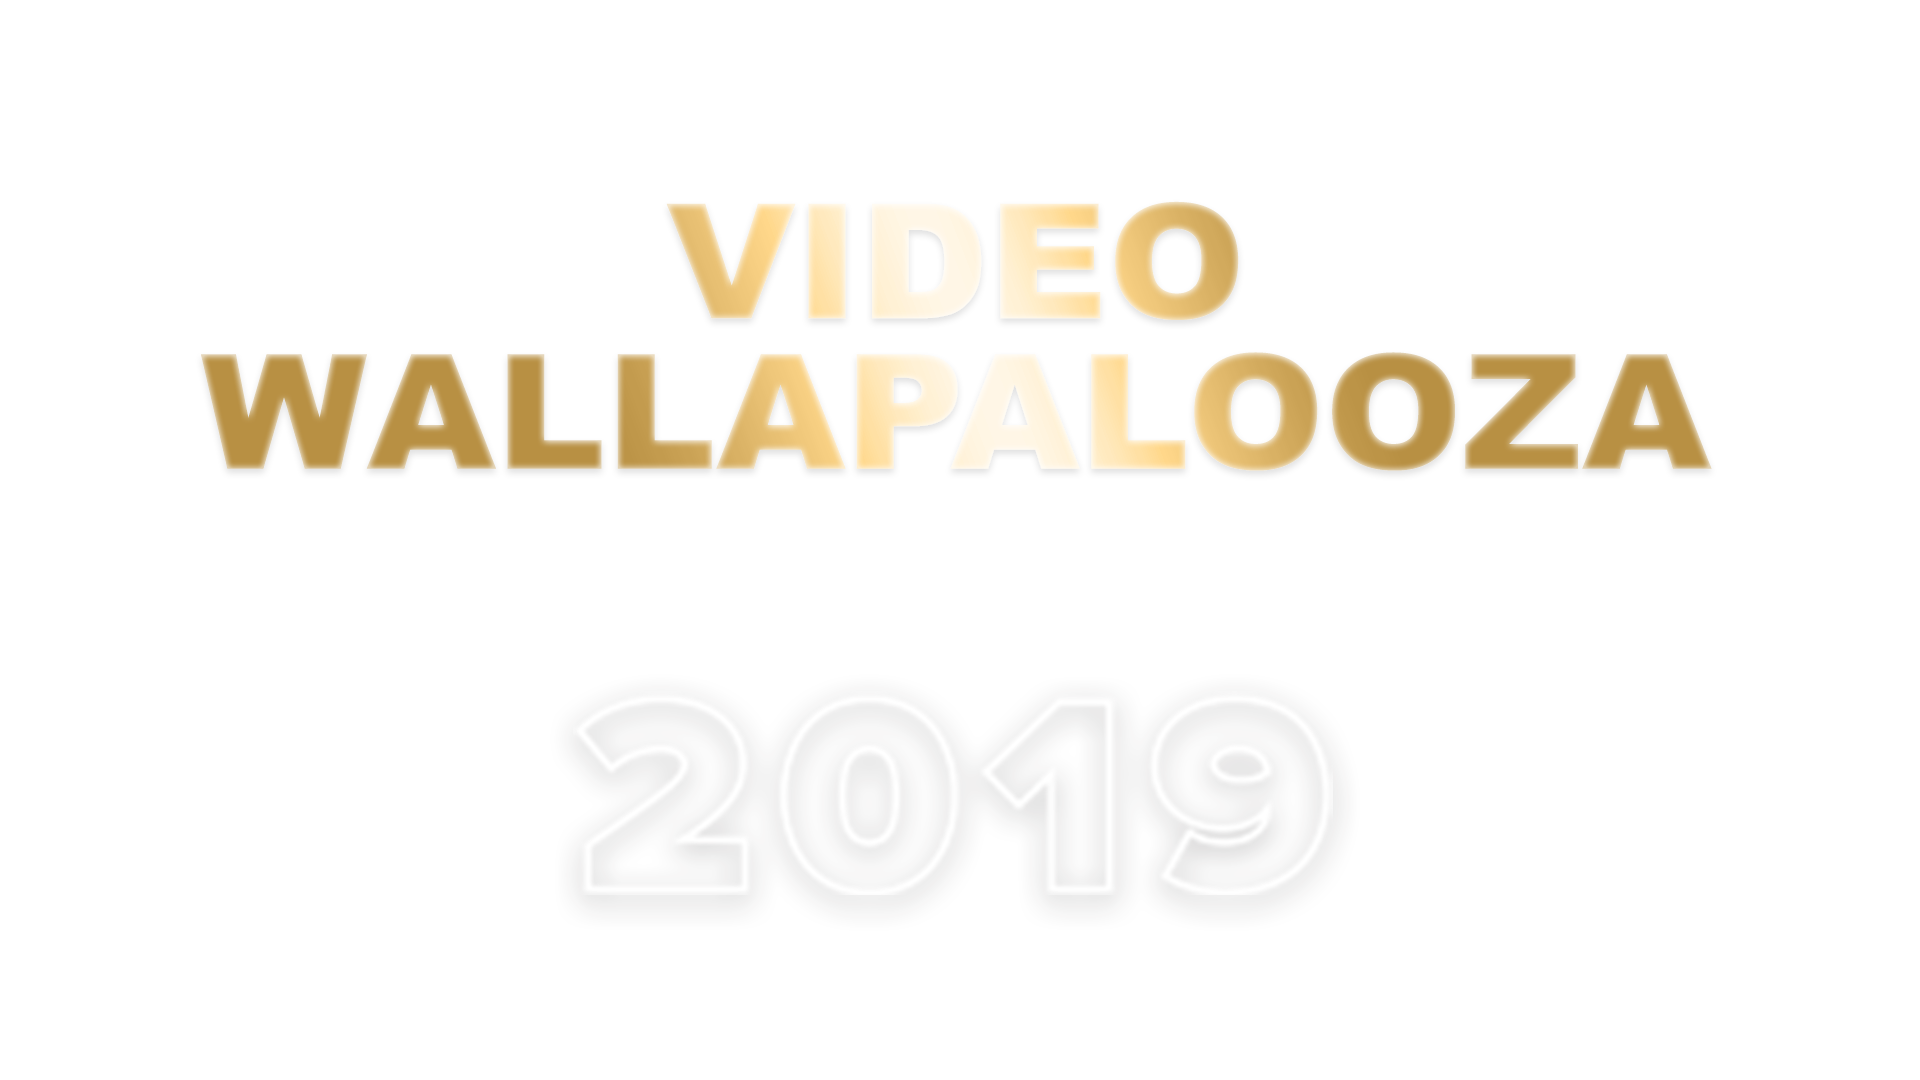 Leyard and Planar Present: Video Wallapalooza Roadshow 2019